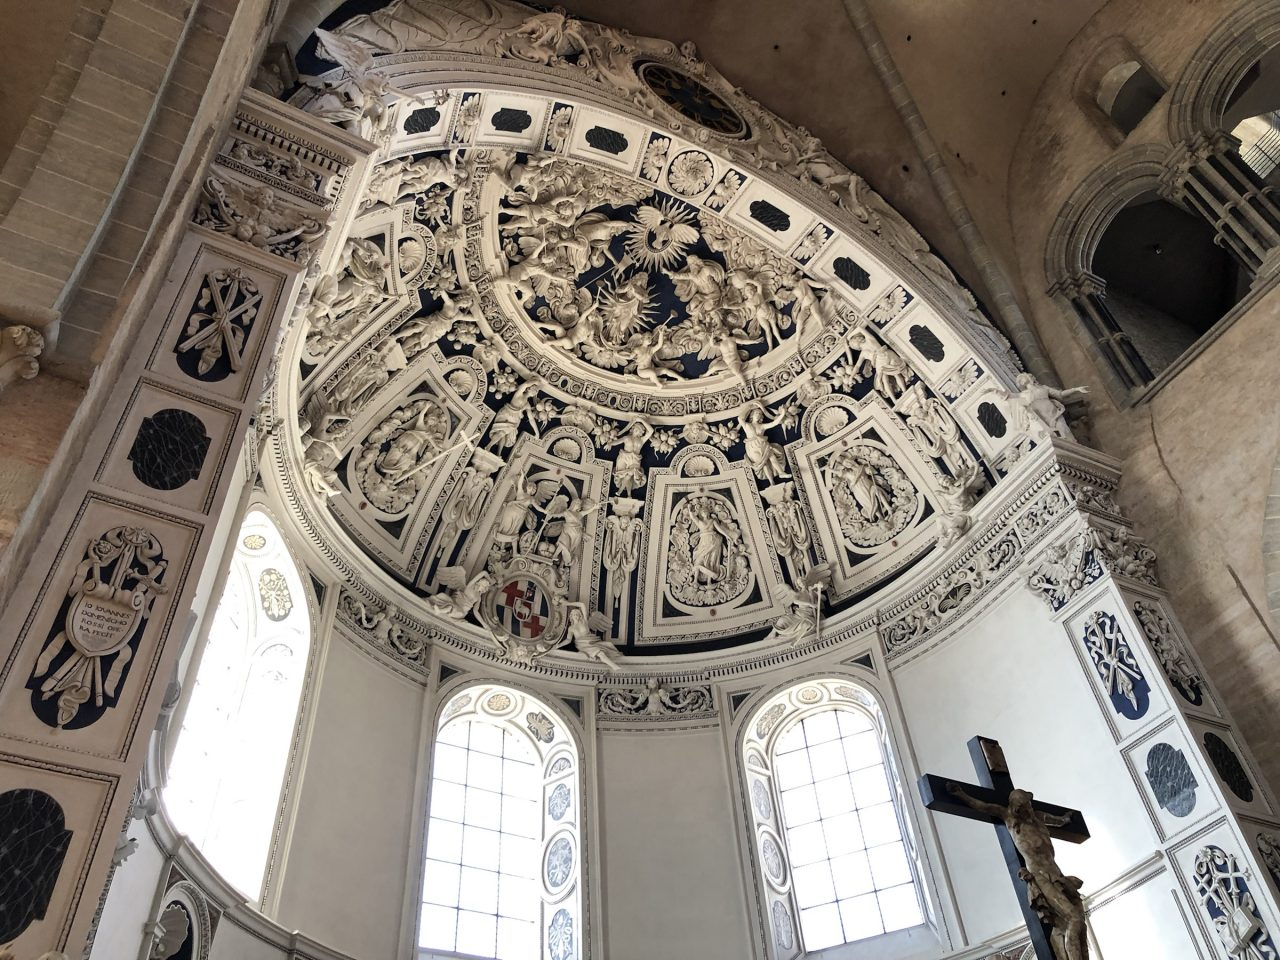 Cathedral of Trier ceiling